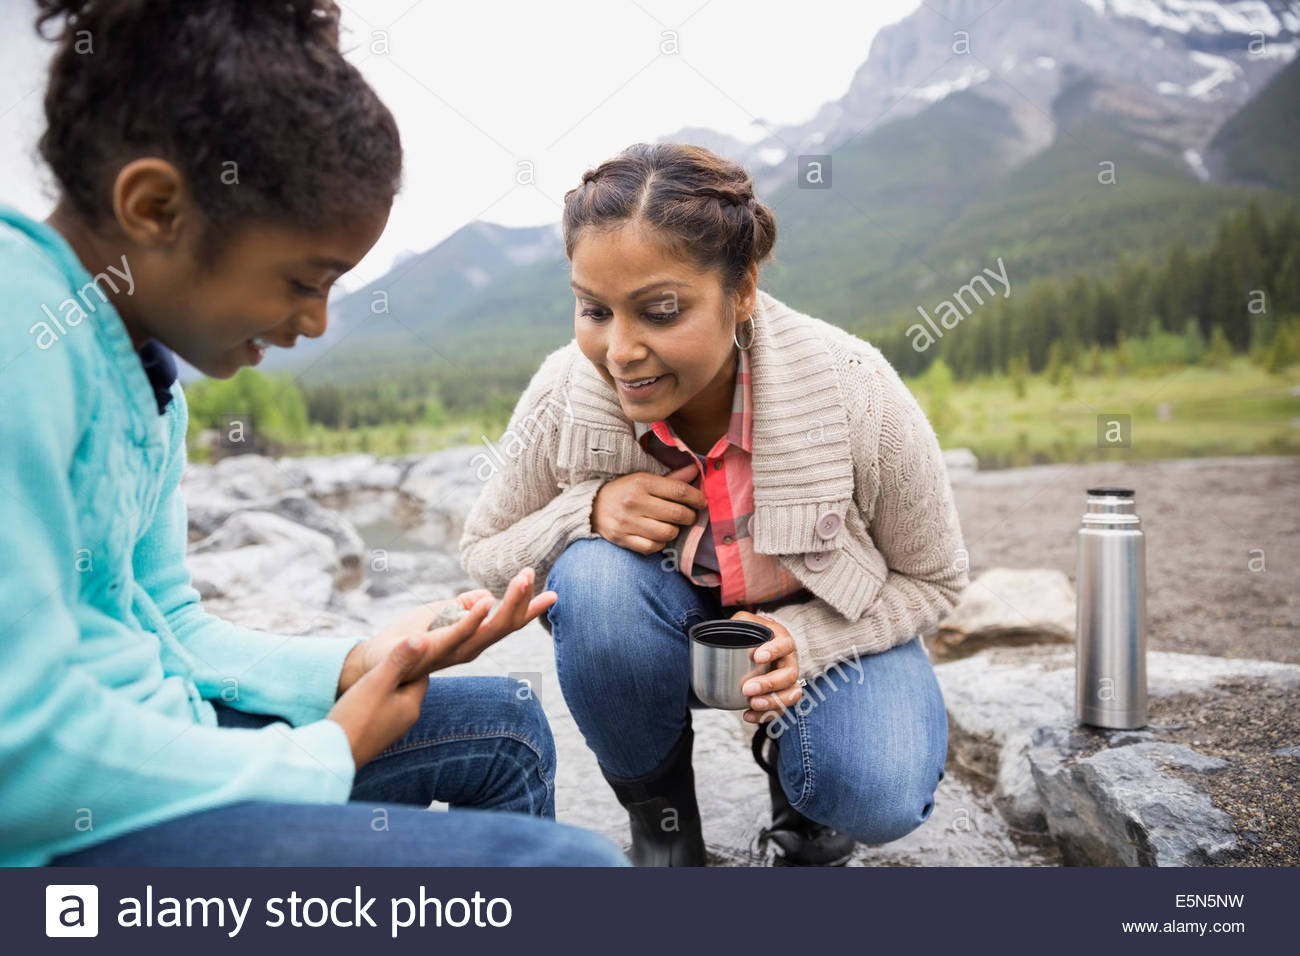 Mother and daughter looking at fish - Stock Image